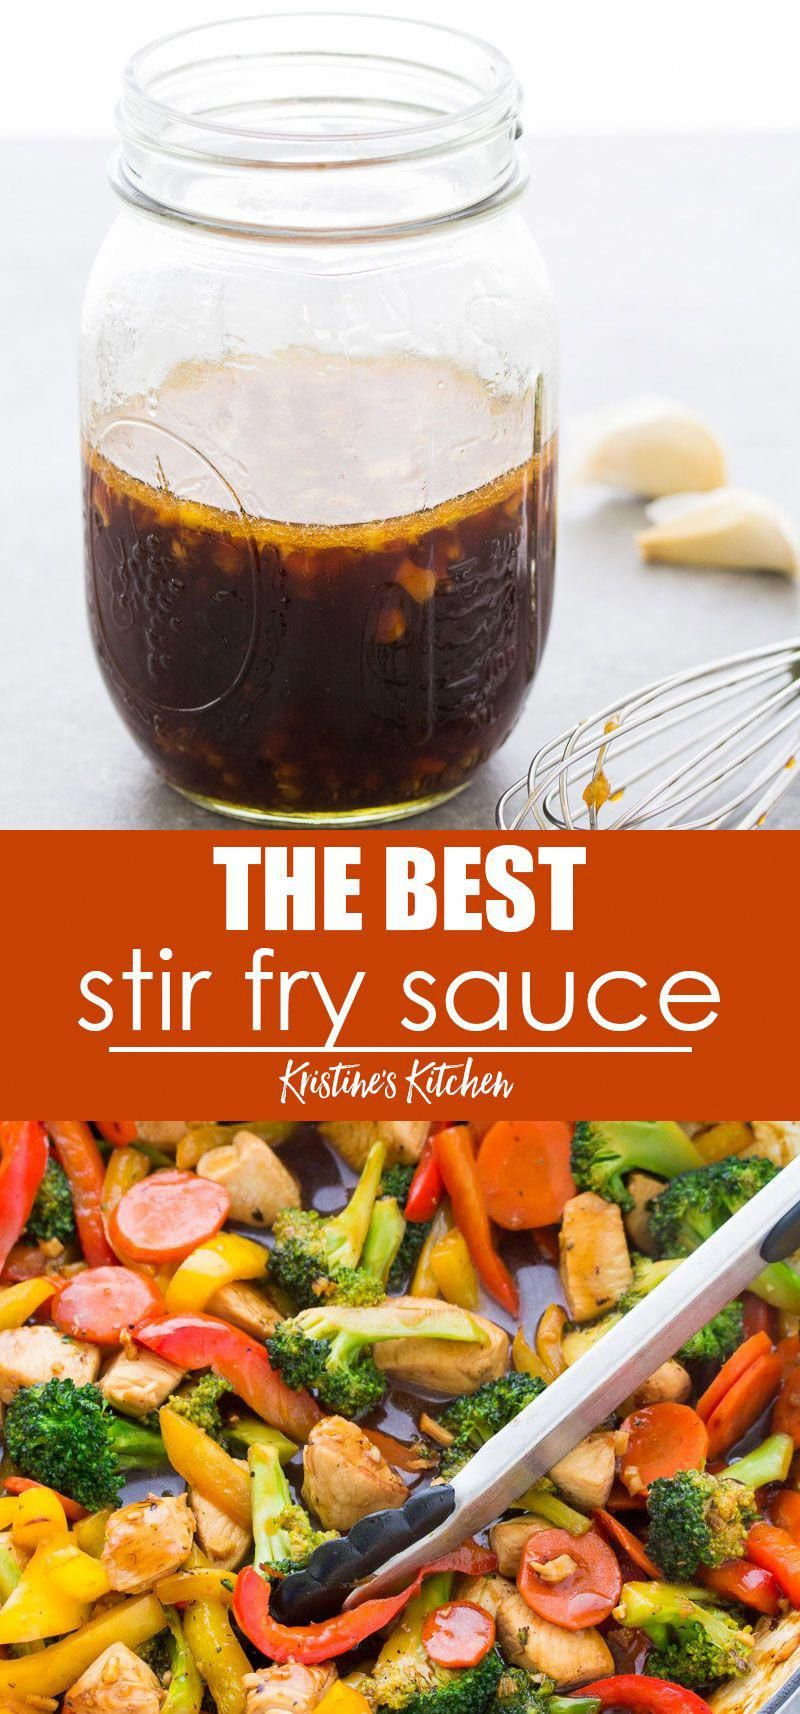 The BEST Stir Fry Sauce - Quick and Easy!